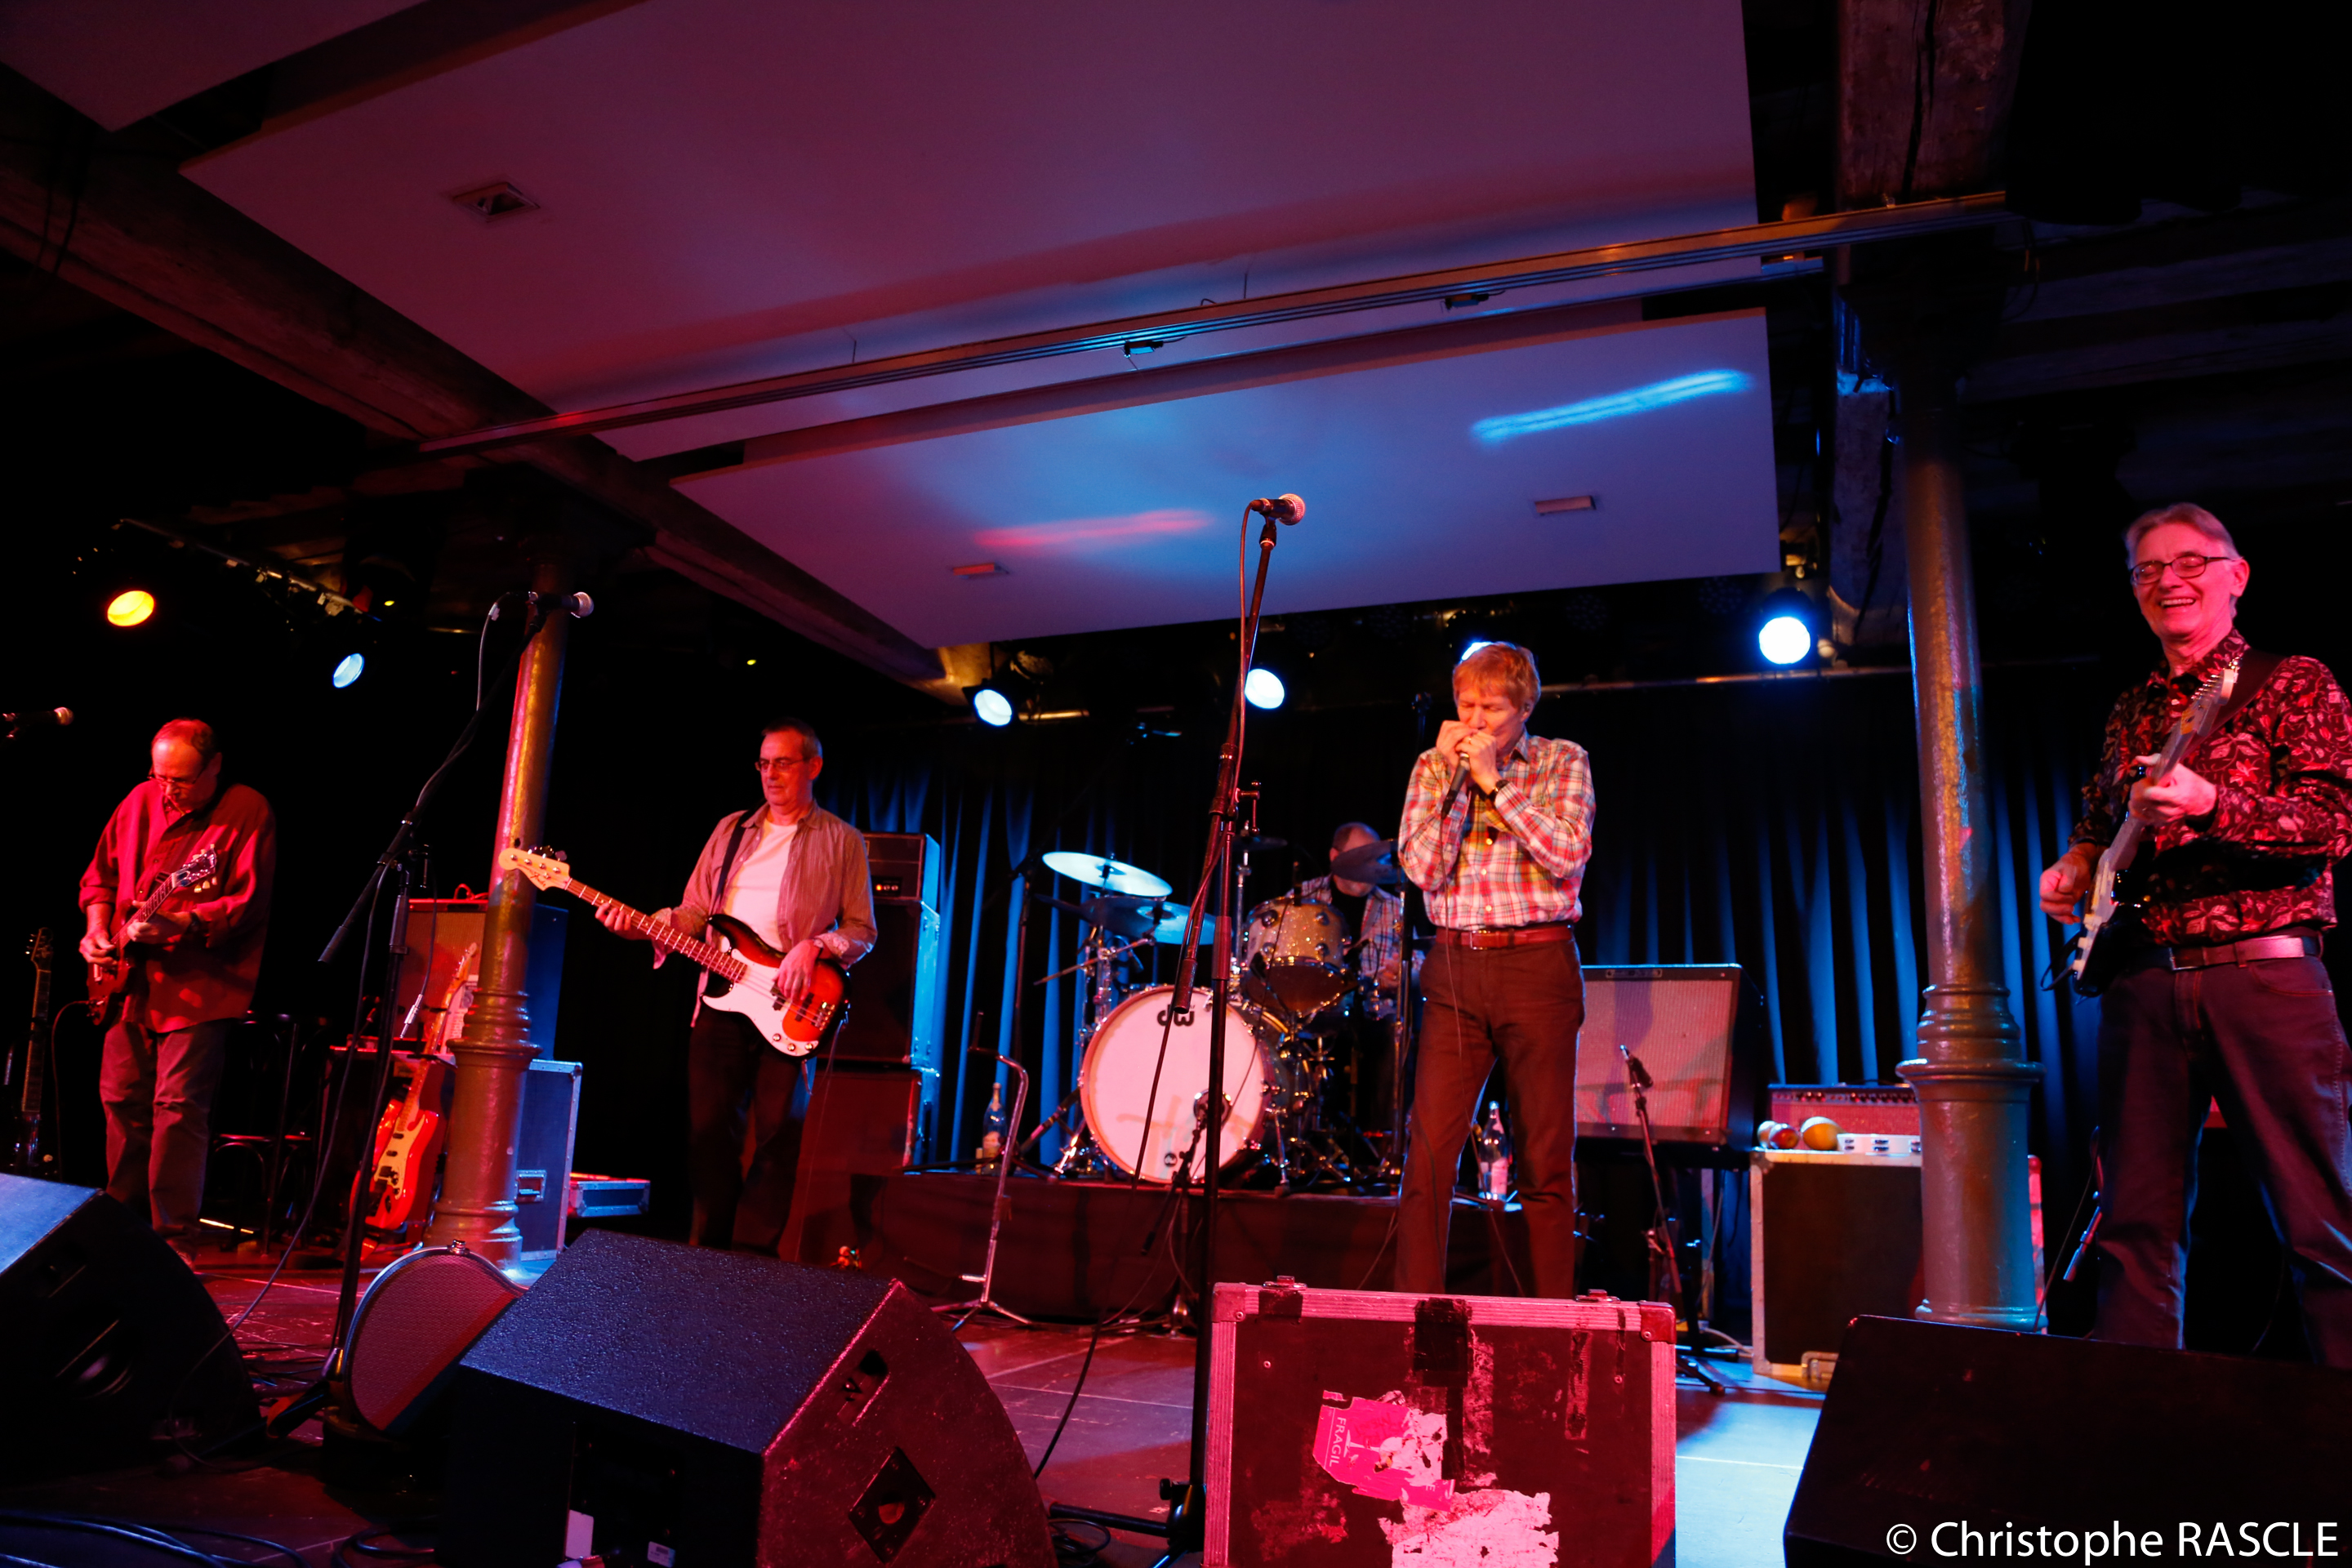 The Blues Band – Haberkasten in Mühldorf